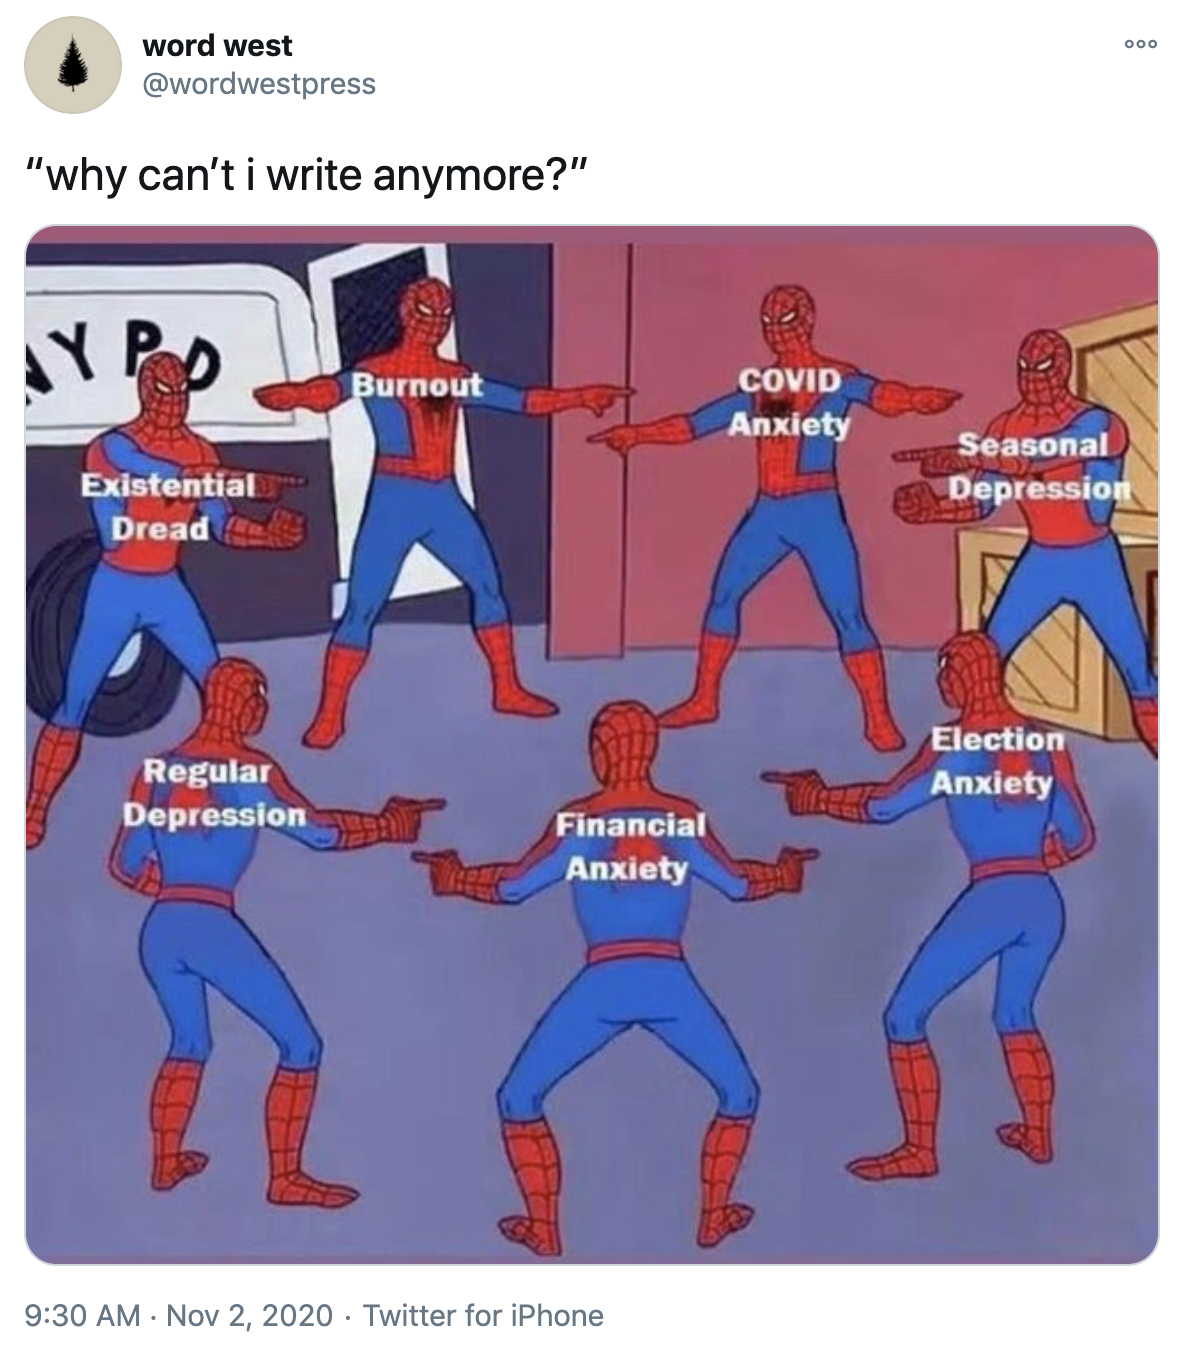 """A tweet that asks """"Why can't I write anymore?"""" and the accompanying picture showing seven Spiderman cartoons pointing at one another in a circle. They are labeled existential dread, burnout, COVID anxiety, seasonal depression, election anxiety, financial anxiety, and regular depression."""